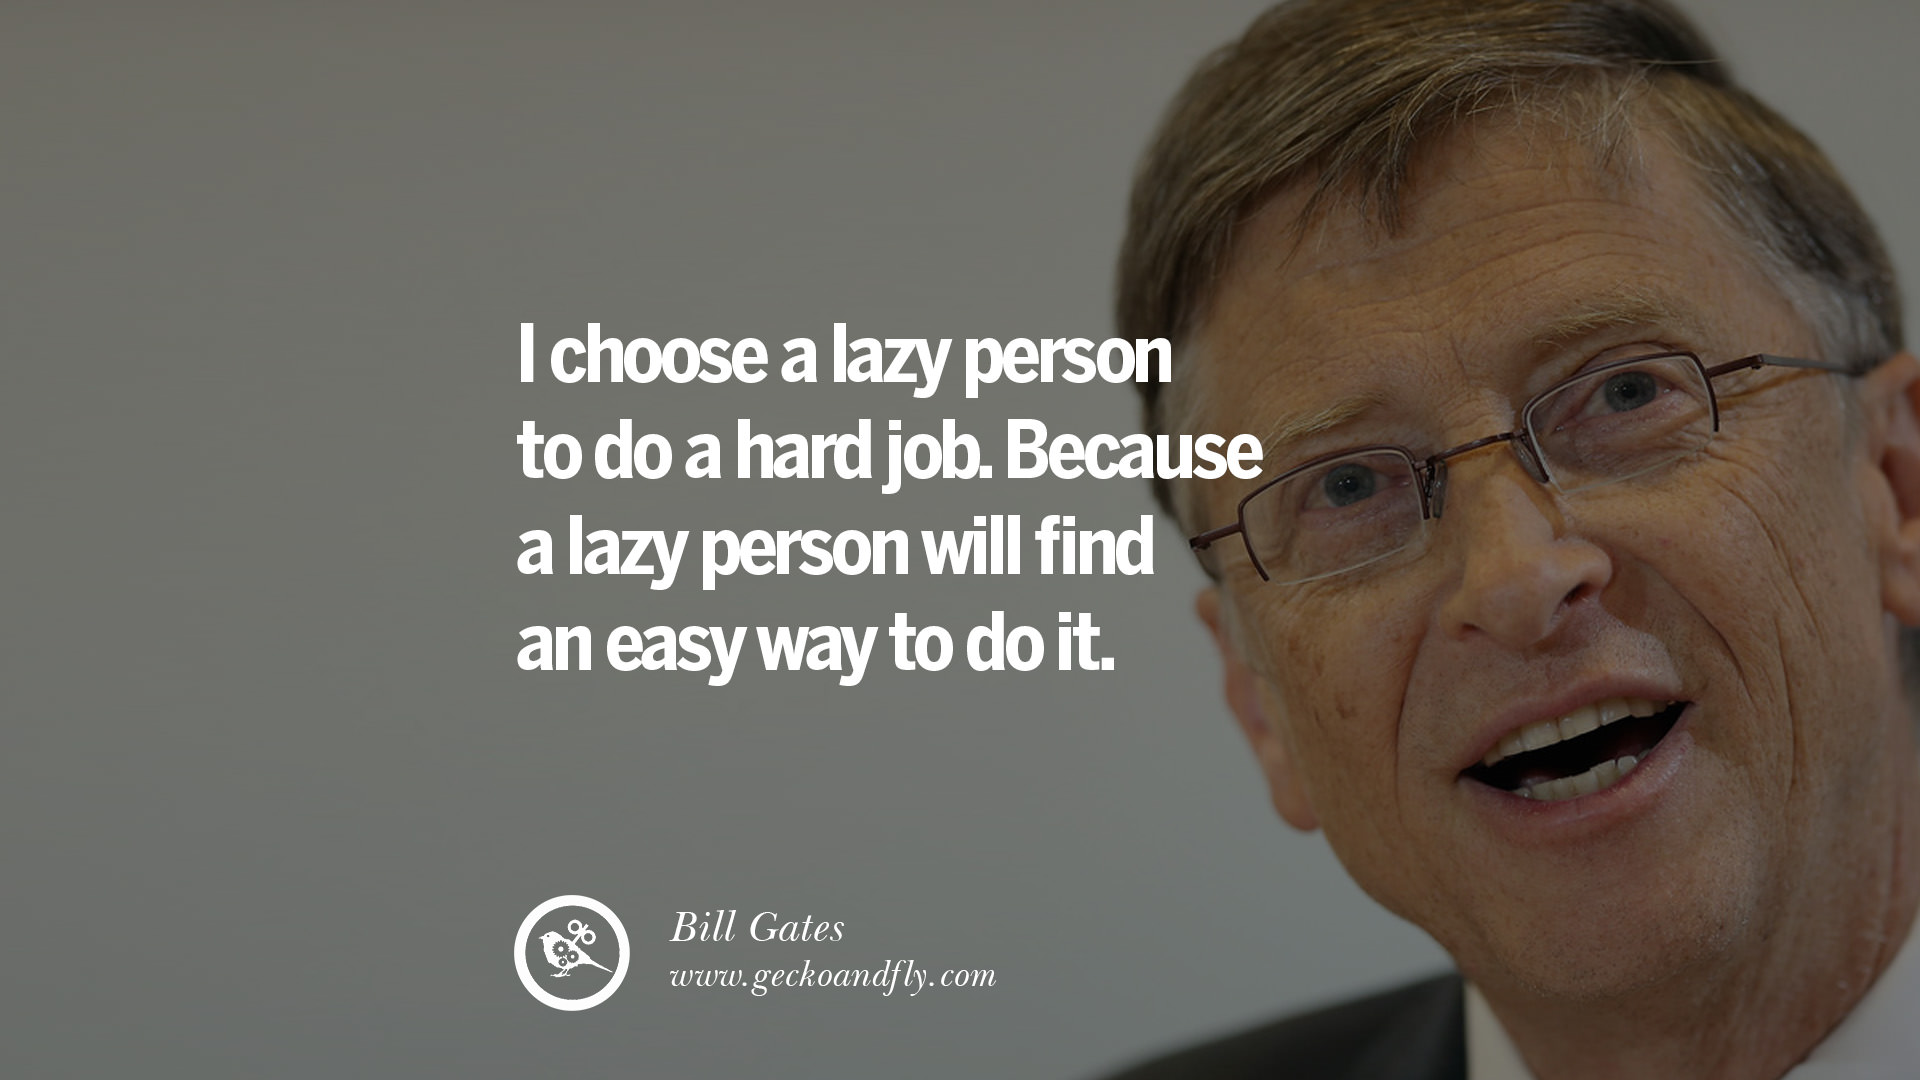 Gandhi Wallpapers With Quotes 15 Inspiring Bill Gates Quotes On Success And Life